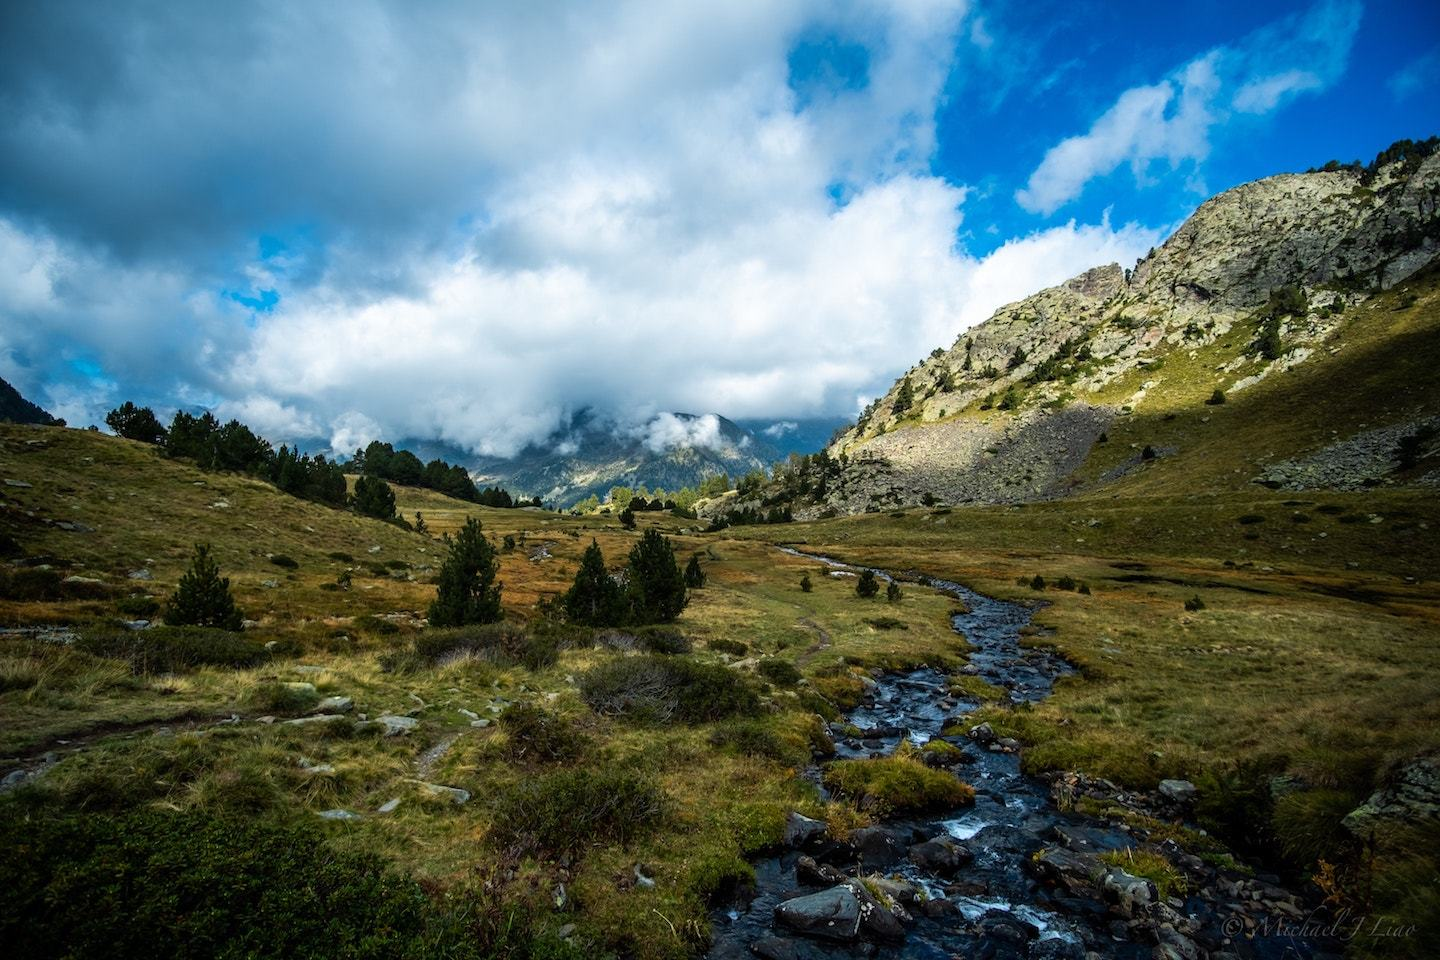 mountains with trees and stream in the pyrenees mountains in spain